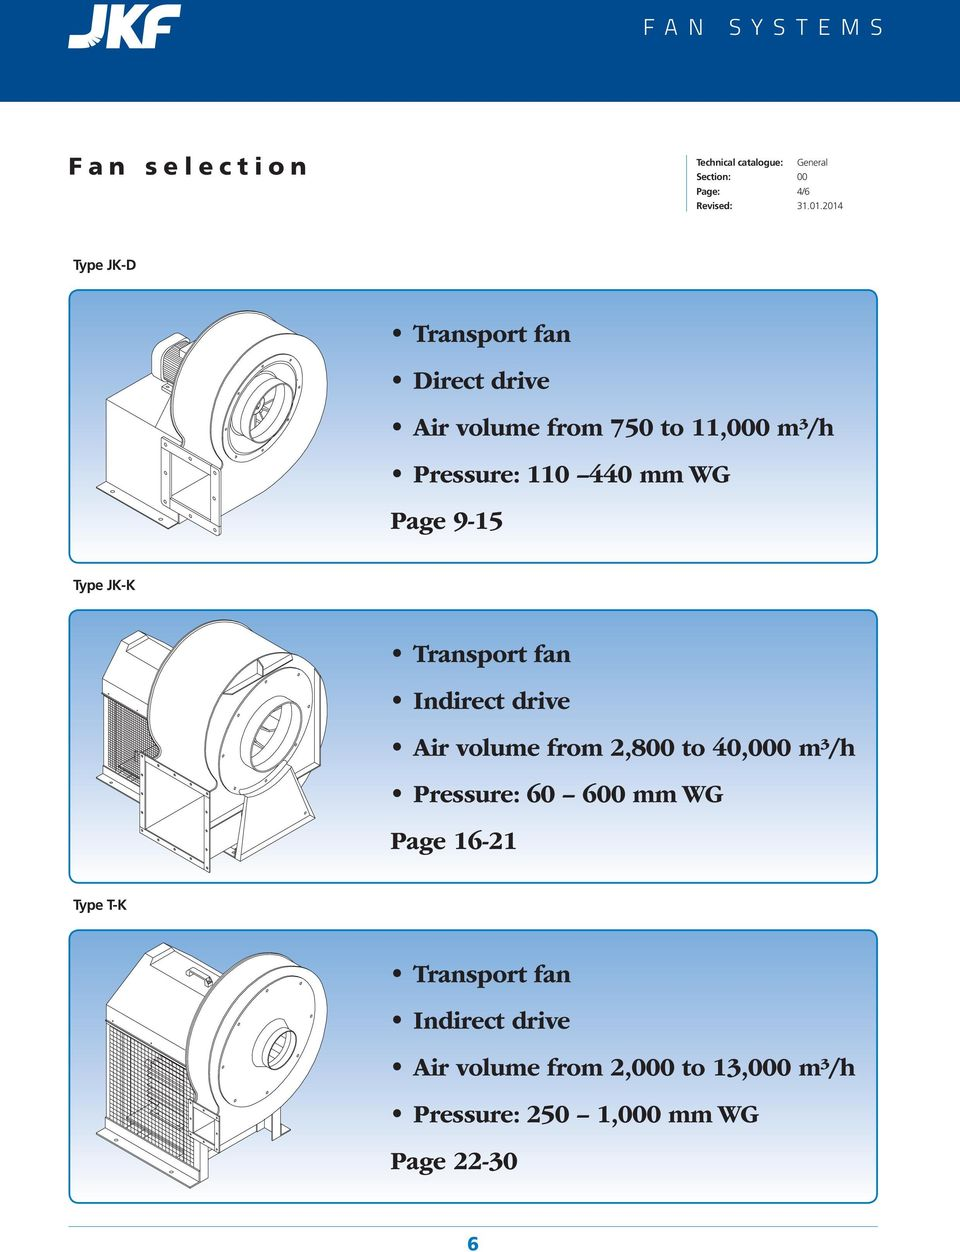 9-1 Type JK-K Transport fan Indirect drive from 2,8 to 4, m³/h 6 6 mm WG Page